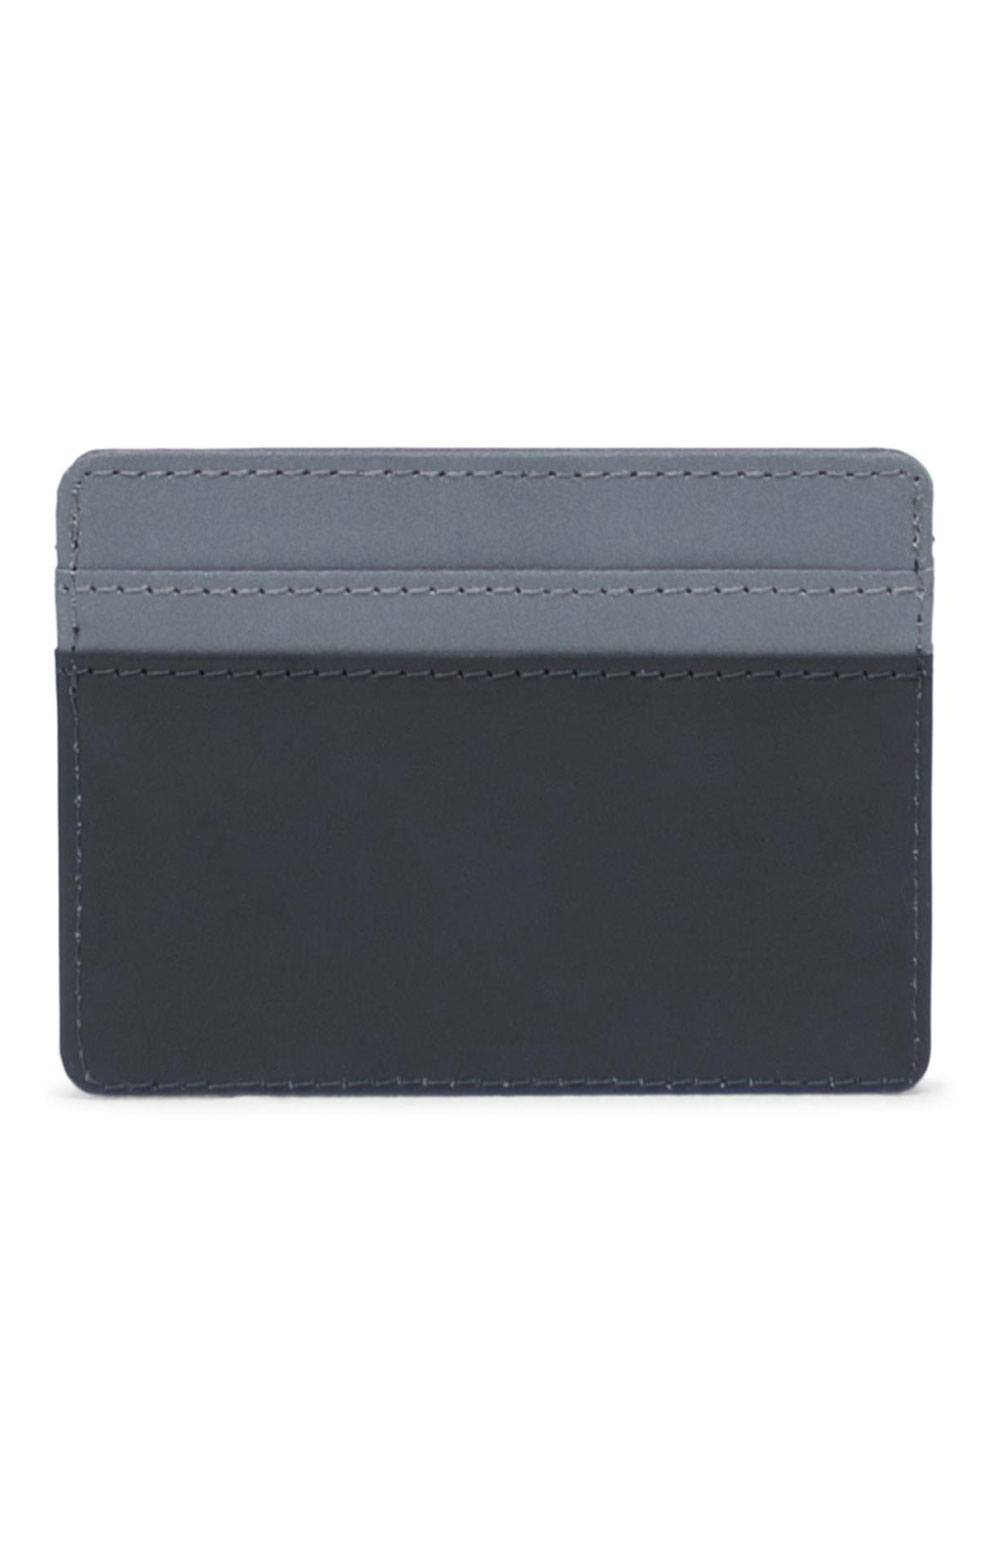 Charlie Reflective Wallet - Black/Silver 4